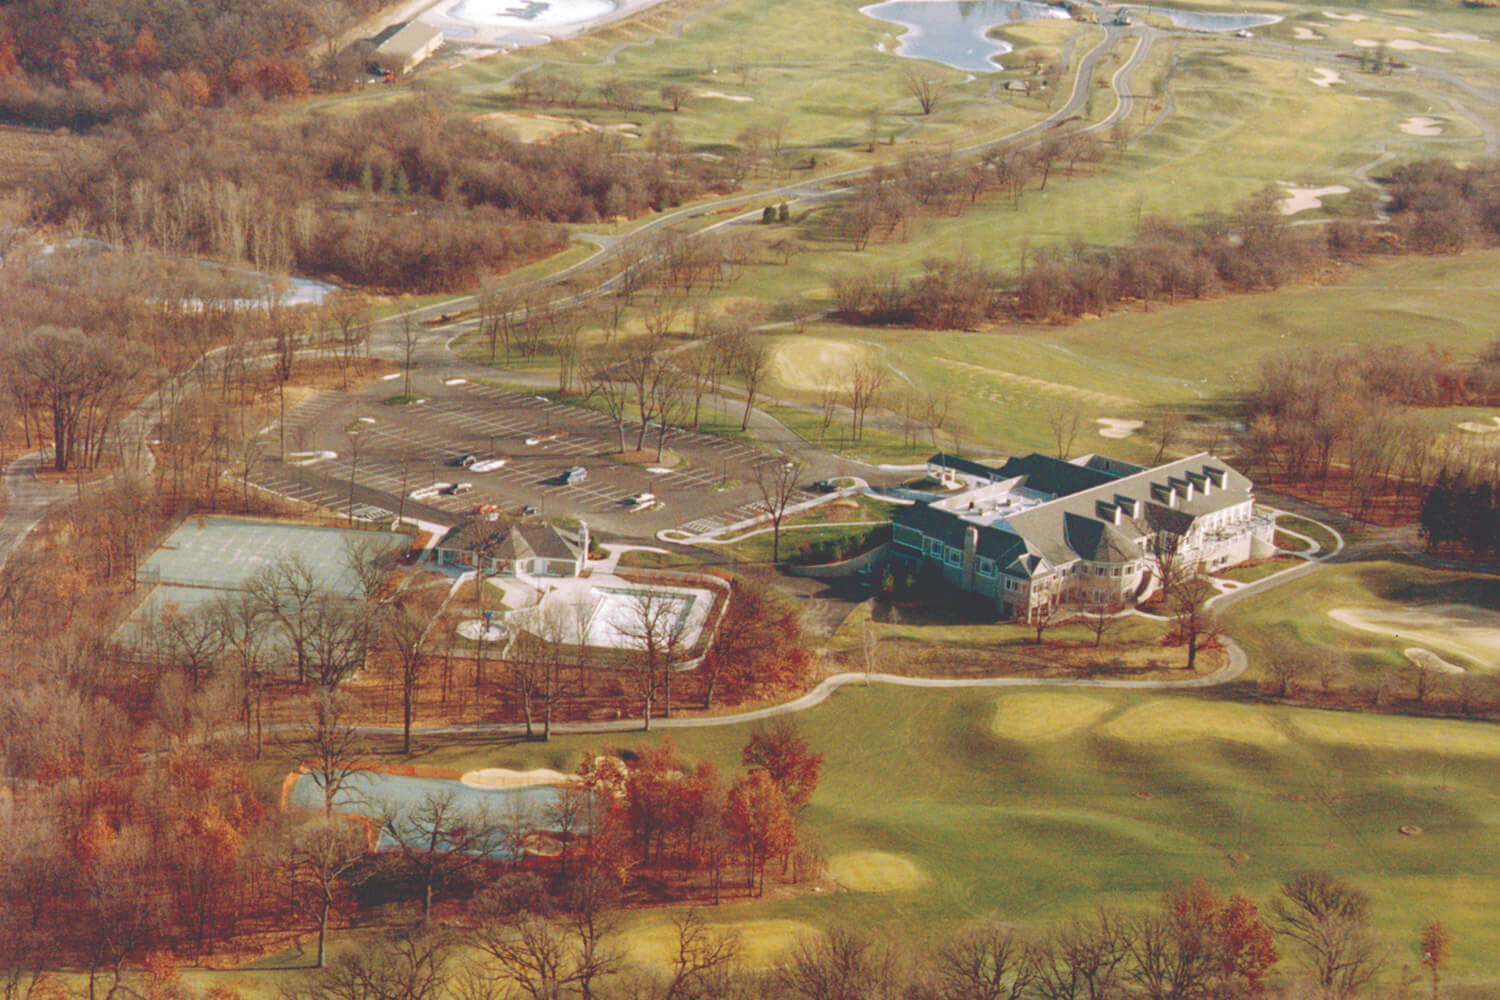 Royal Melbourne Country Club aerial